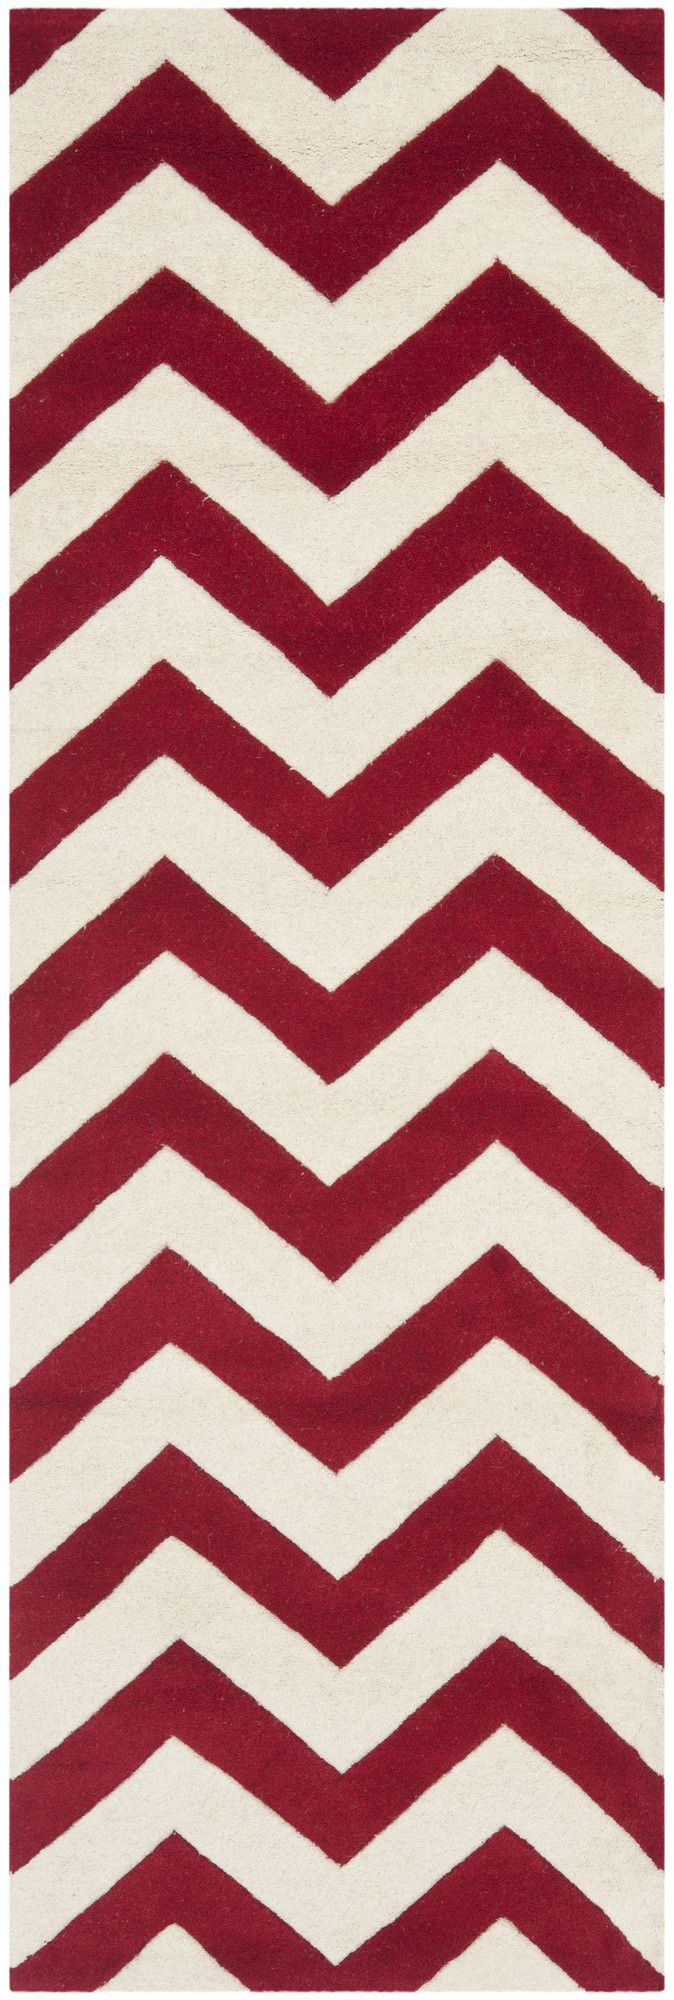 best  chevron area rugs ideas on pinterest  living room area  - chatham red  ivory chevron area rug